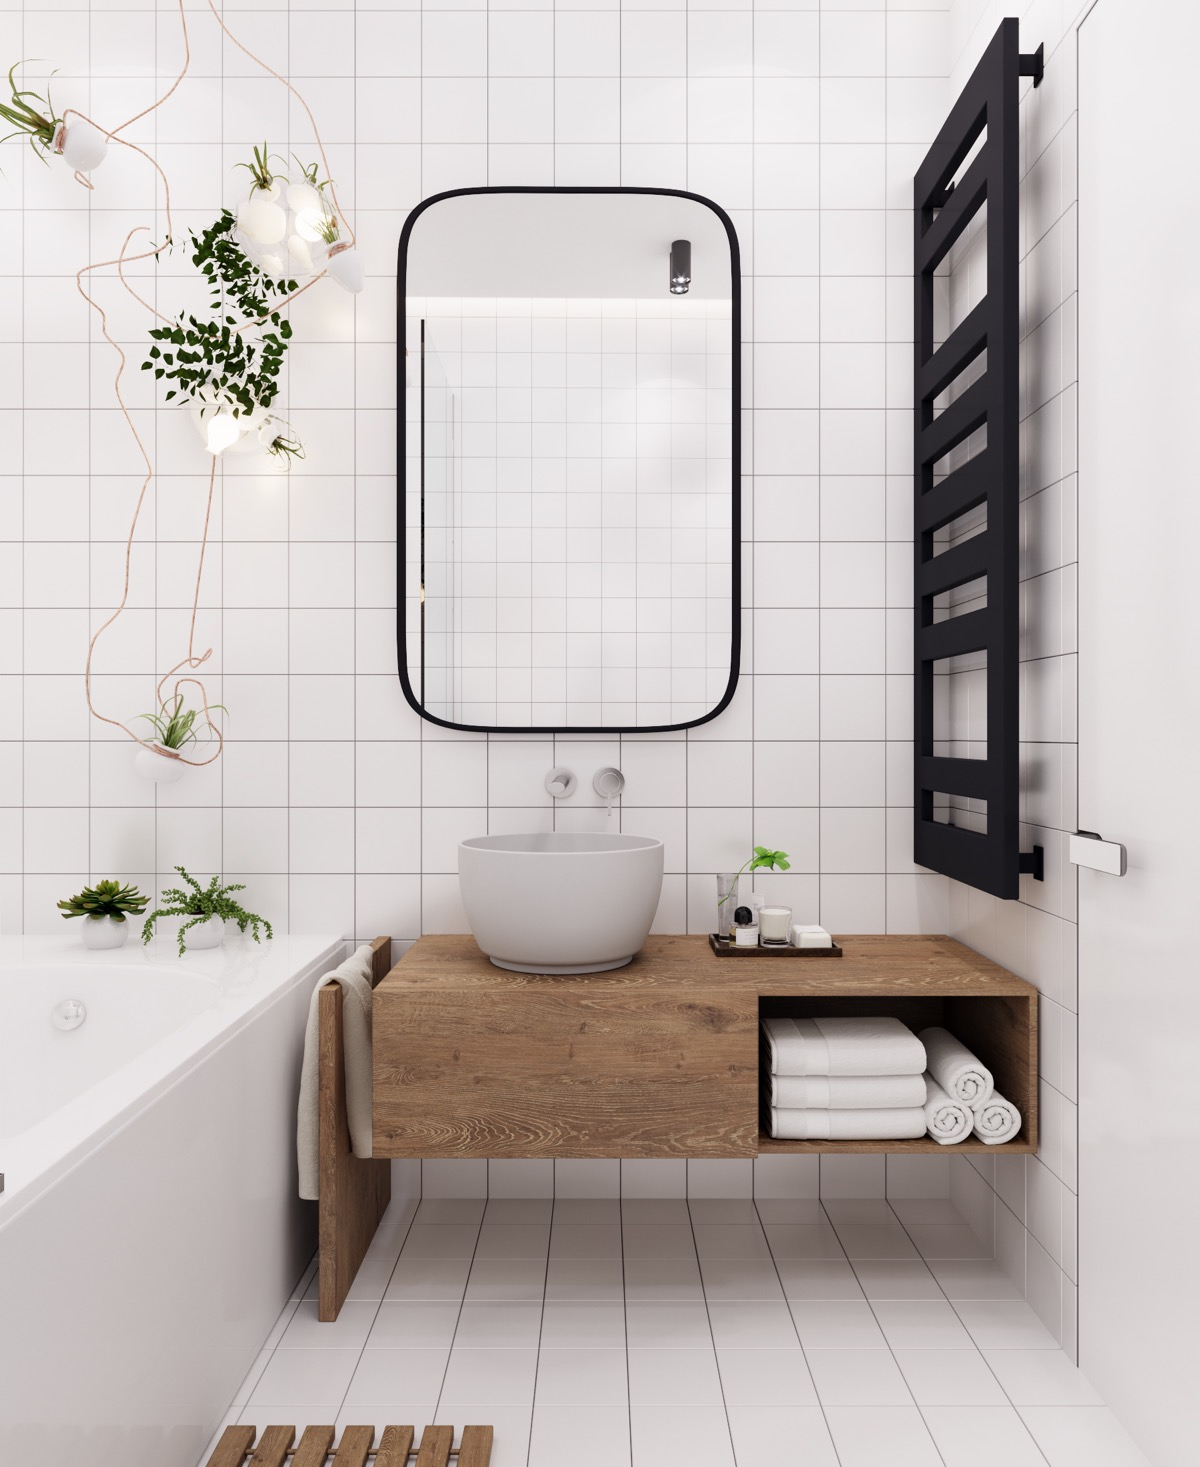 40 Modern Bathroom Vanities That Overflow With Style images 3